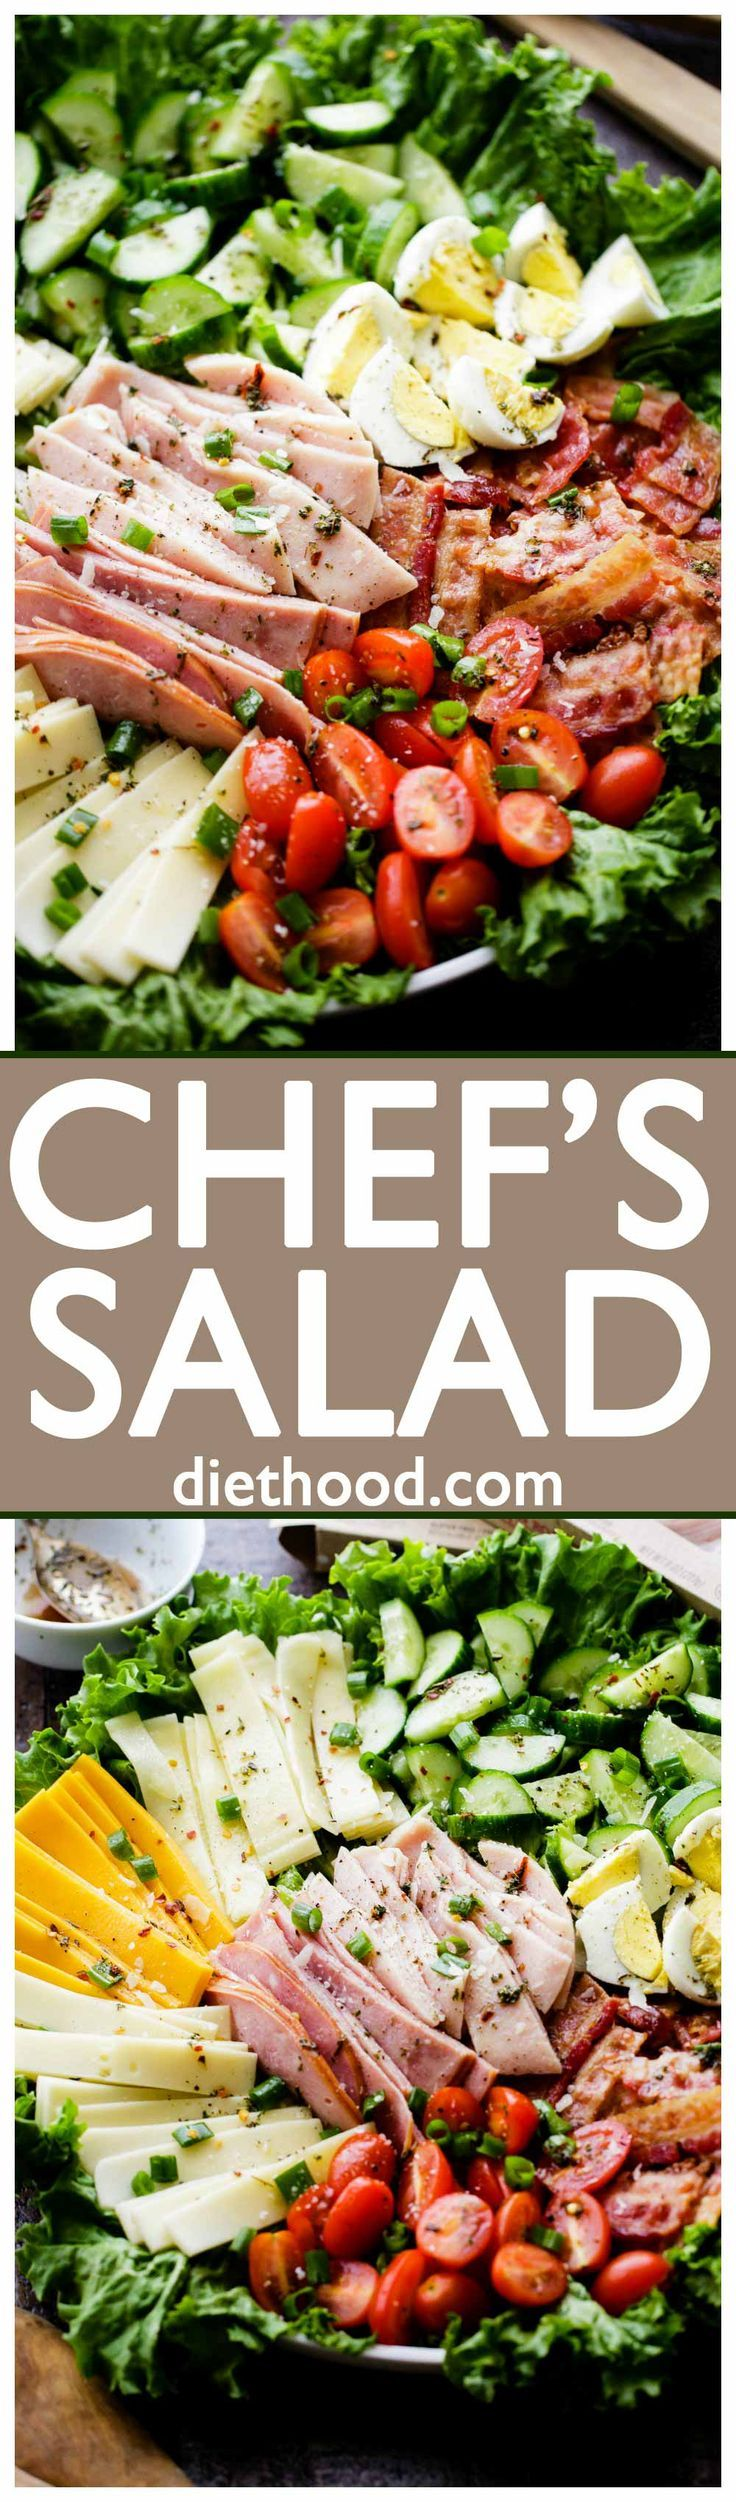 Chef's Salad Recipe - Packed with fresh veggies, eggs, deli meats, and cheese, this wonderful main dish salad makes for a perfect lunch or dinner option.